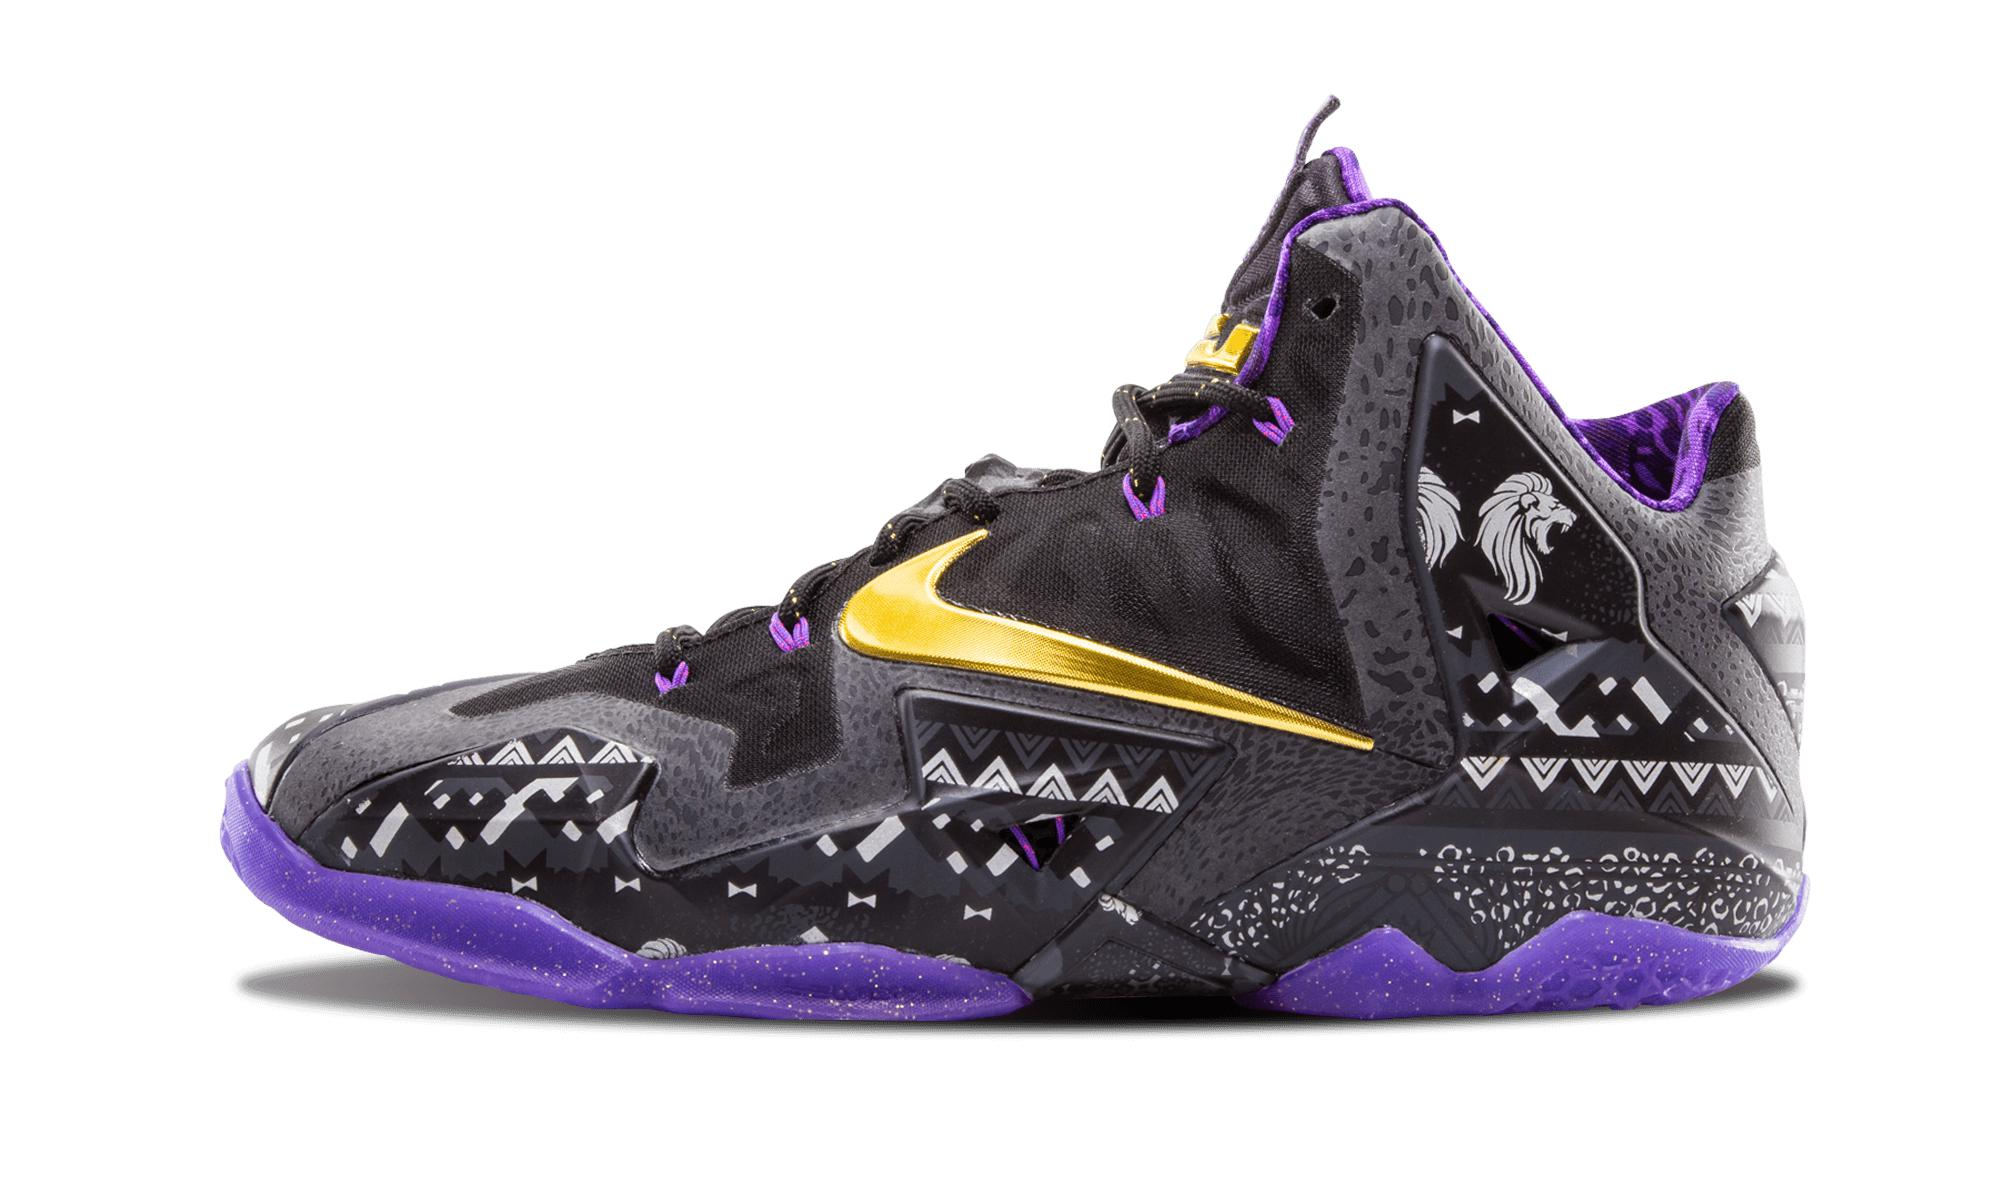 a545c6037e179 top quality kids8217 nike lebron xi gs in elite team collection colorway  91ed1 9fdde  store nike. mens lebron 11 bhm 96d80 229a6